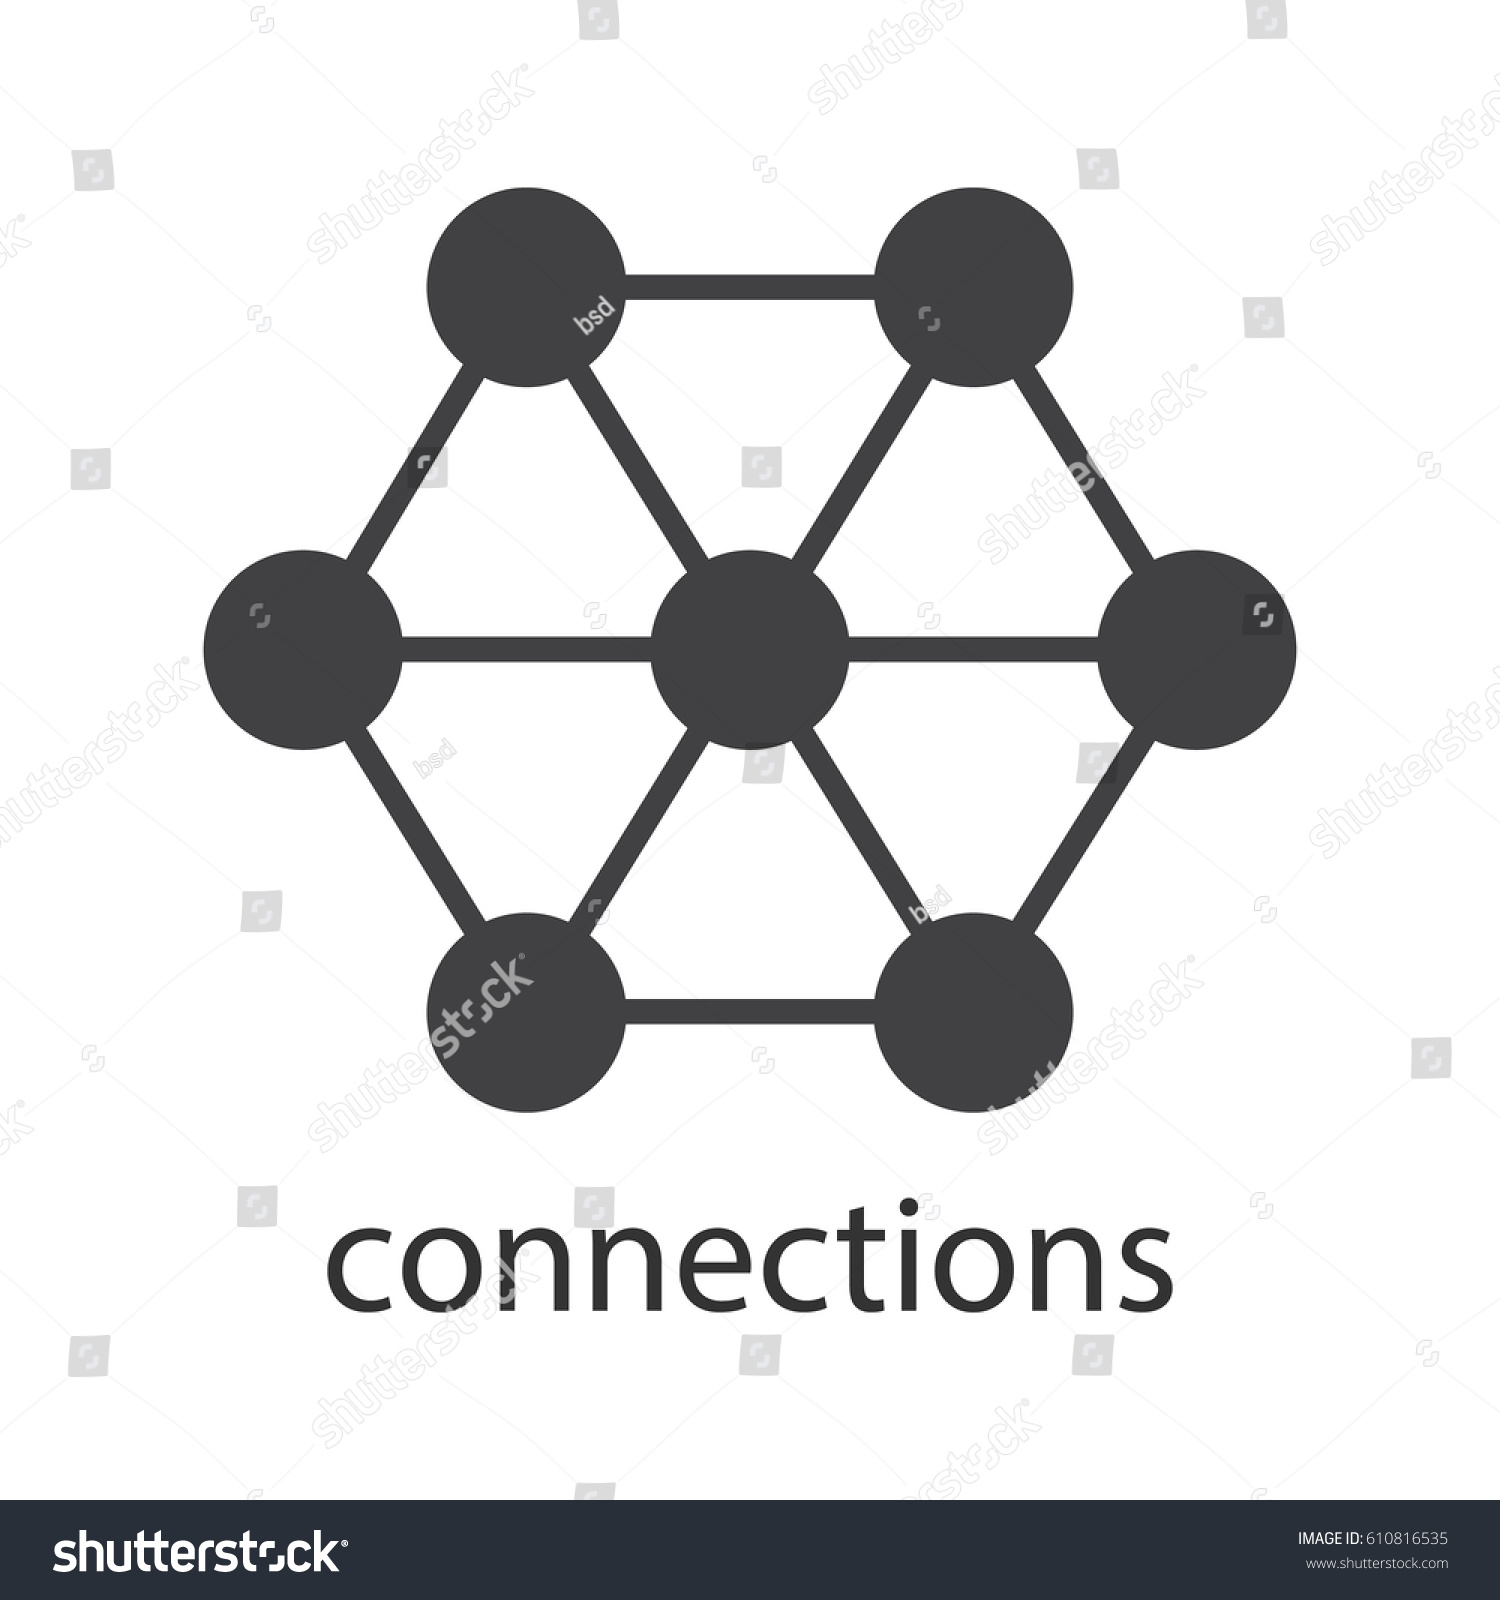 Connections glyph icon silhouette symbol interrelation stock connections glyph icon silhouette symbol interrelation abstract metaphor negative space vector isolated pooptronica